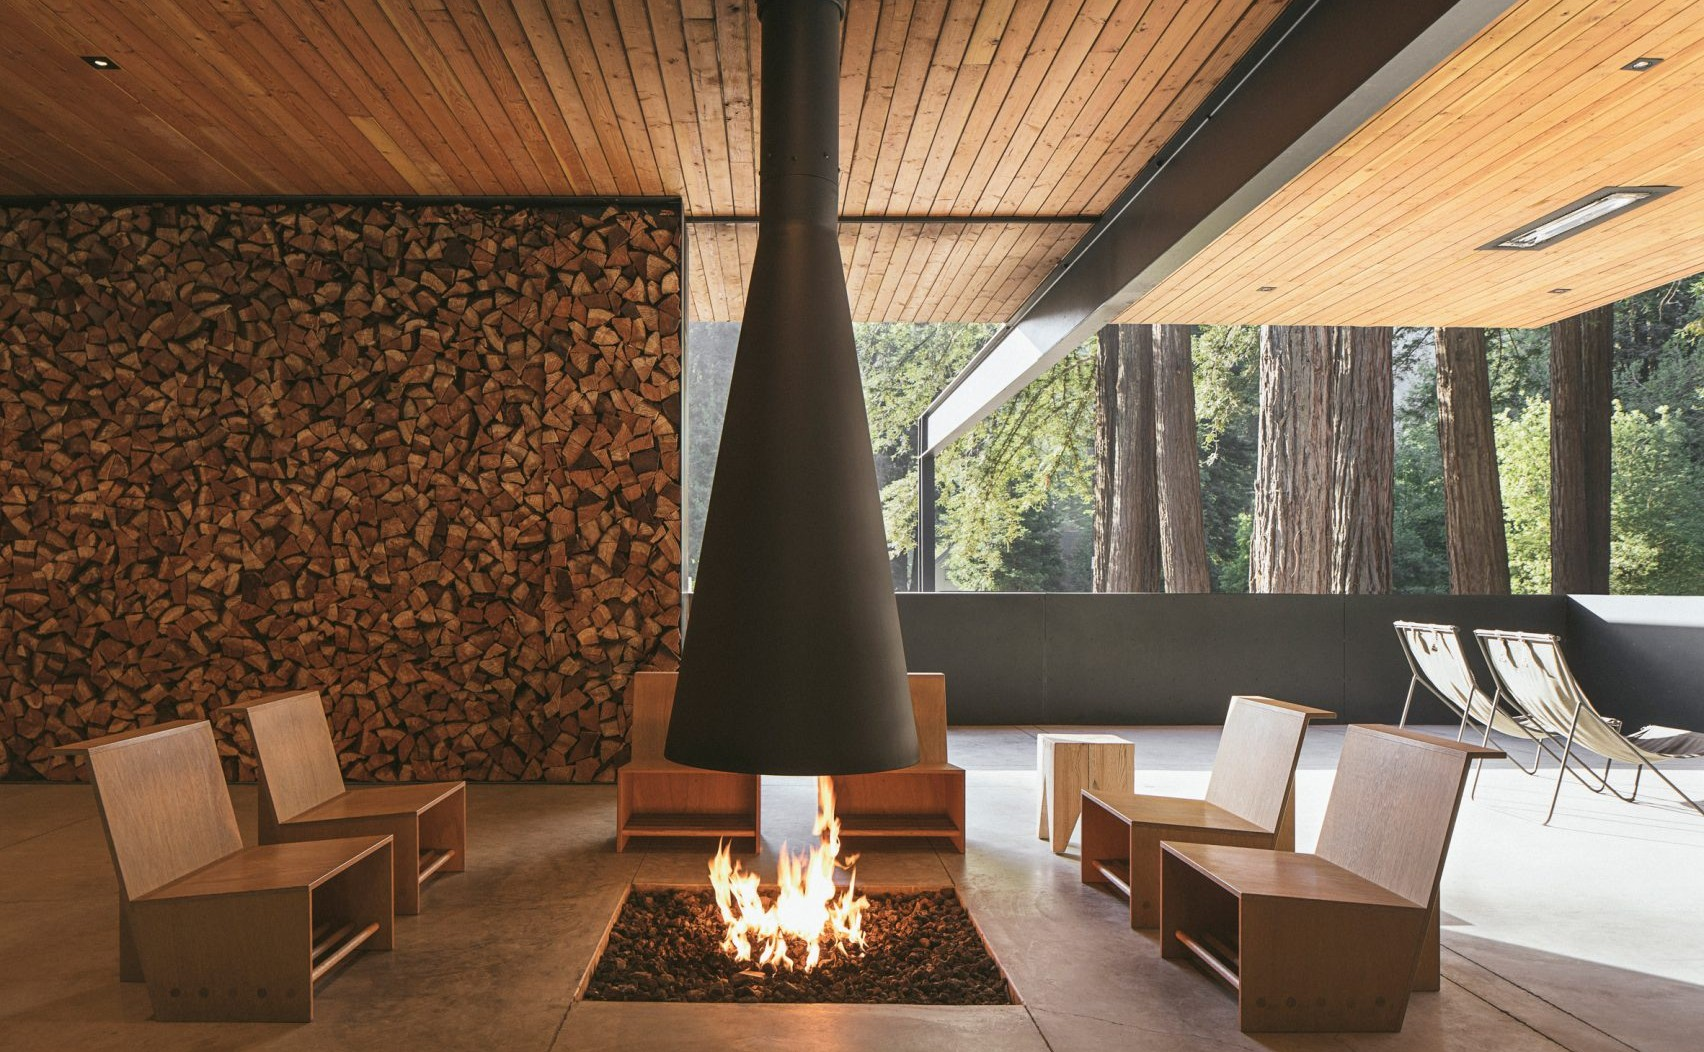 AutoCamp Hotel | Anacapa Architecture